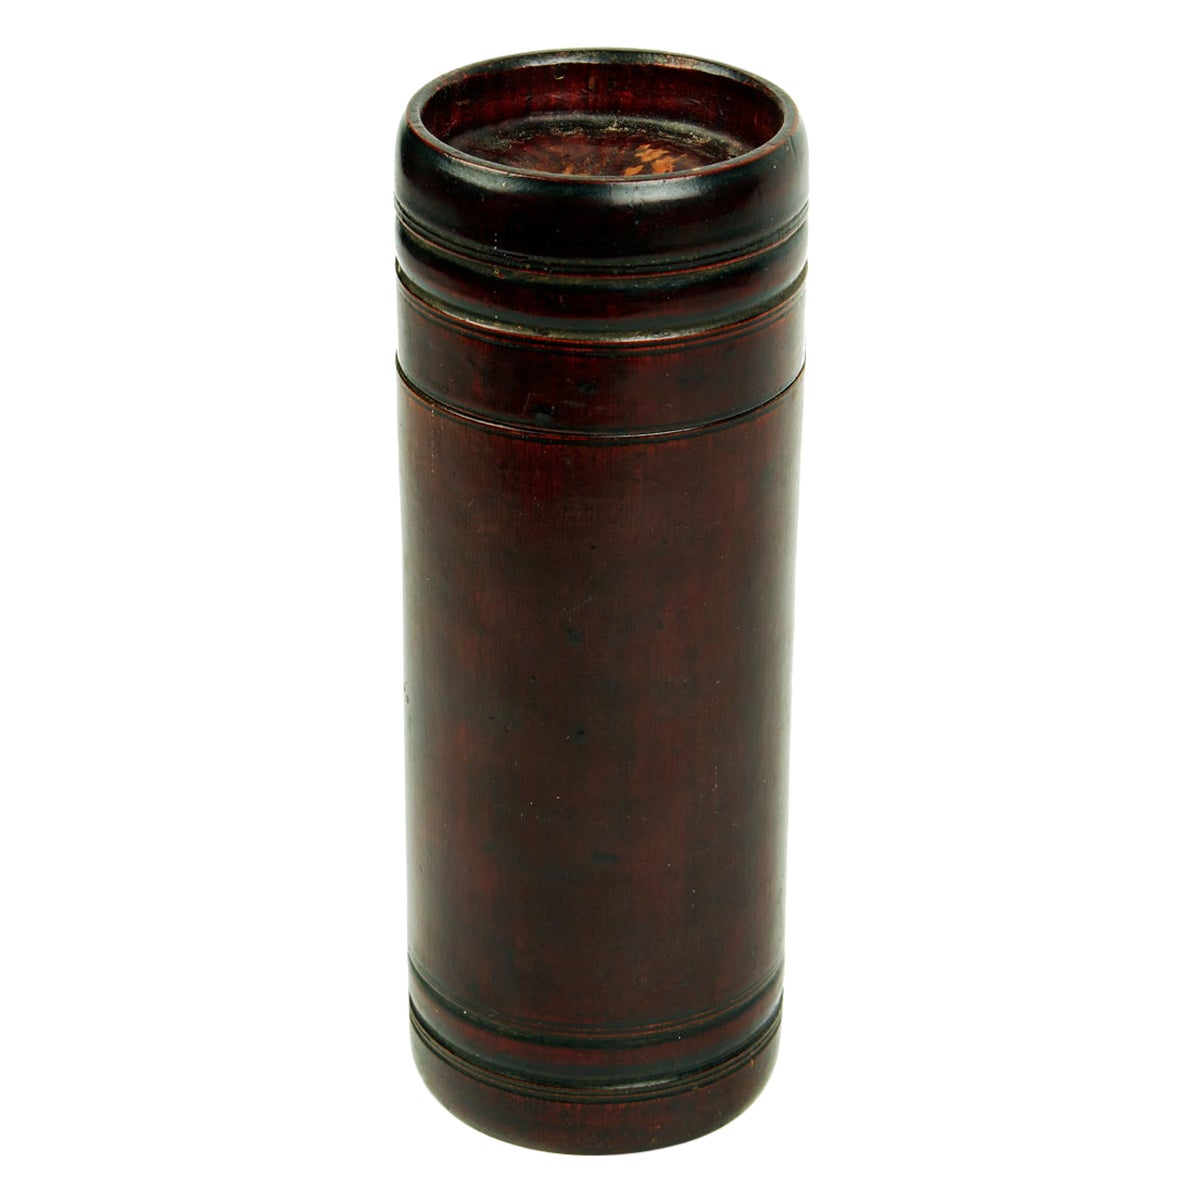 Bamboo Cylinder Container from Japan, Late 19th Century